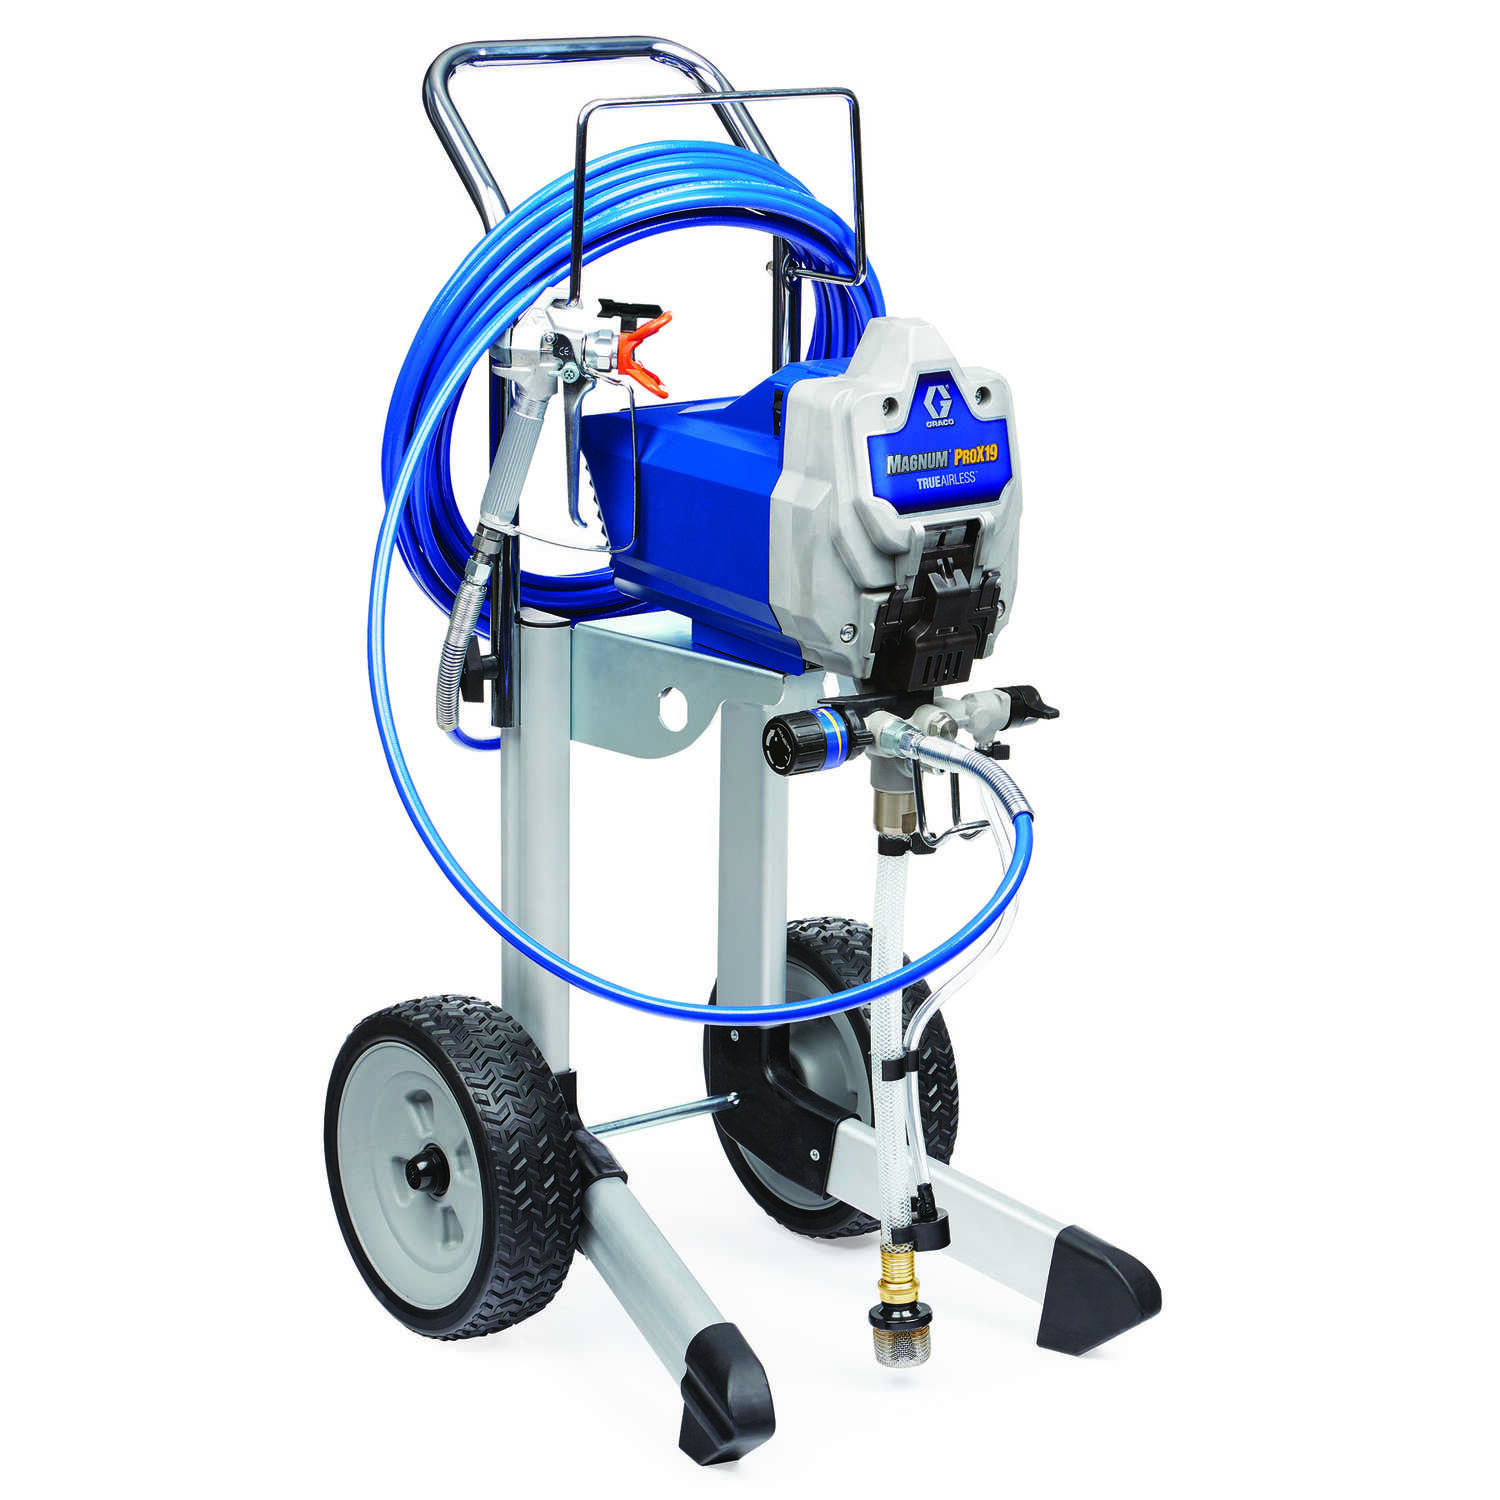 Graco  Magnum  3000 psi Metal  Airless Sprayer